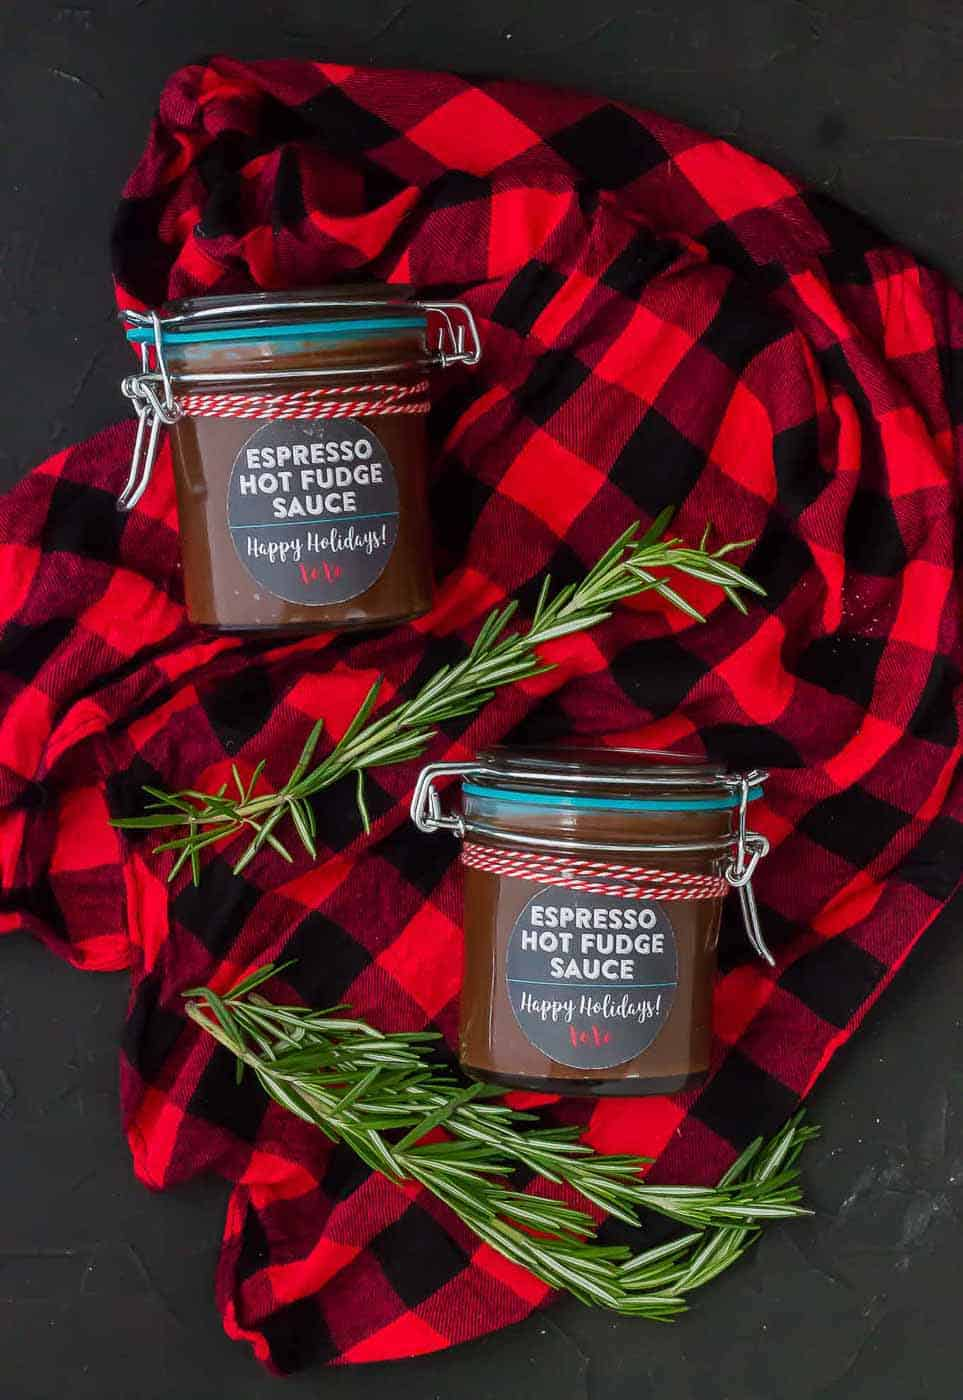 Espresso Hot Fudge Sauce is made in the slow cooker and it's the perfect holiday gift for all your friends and family this holiday season who have a strong love of coffee and chocolate! | Strawberry Blondie Kitchen